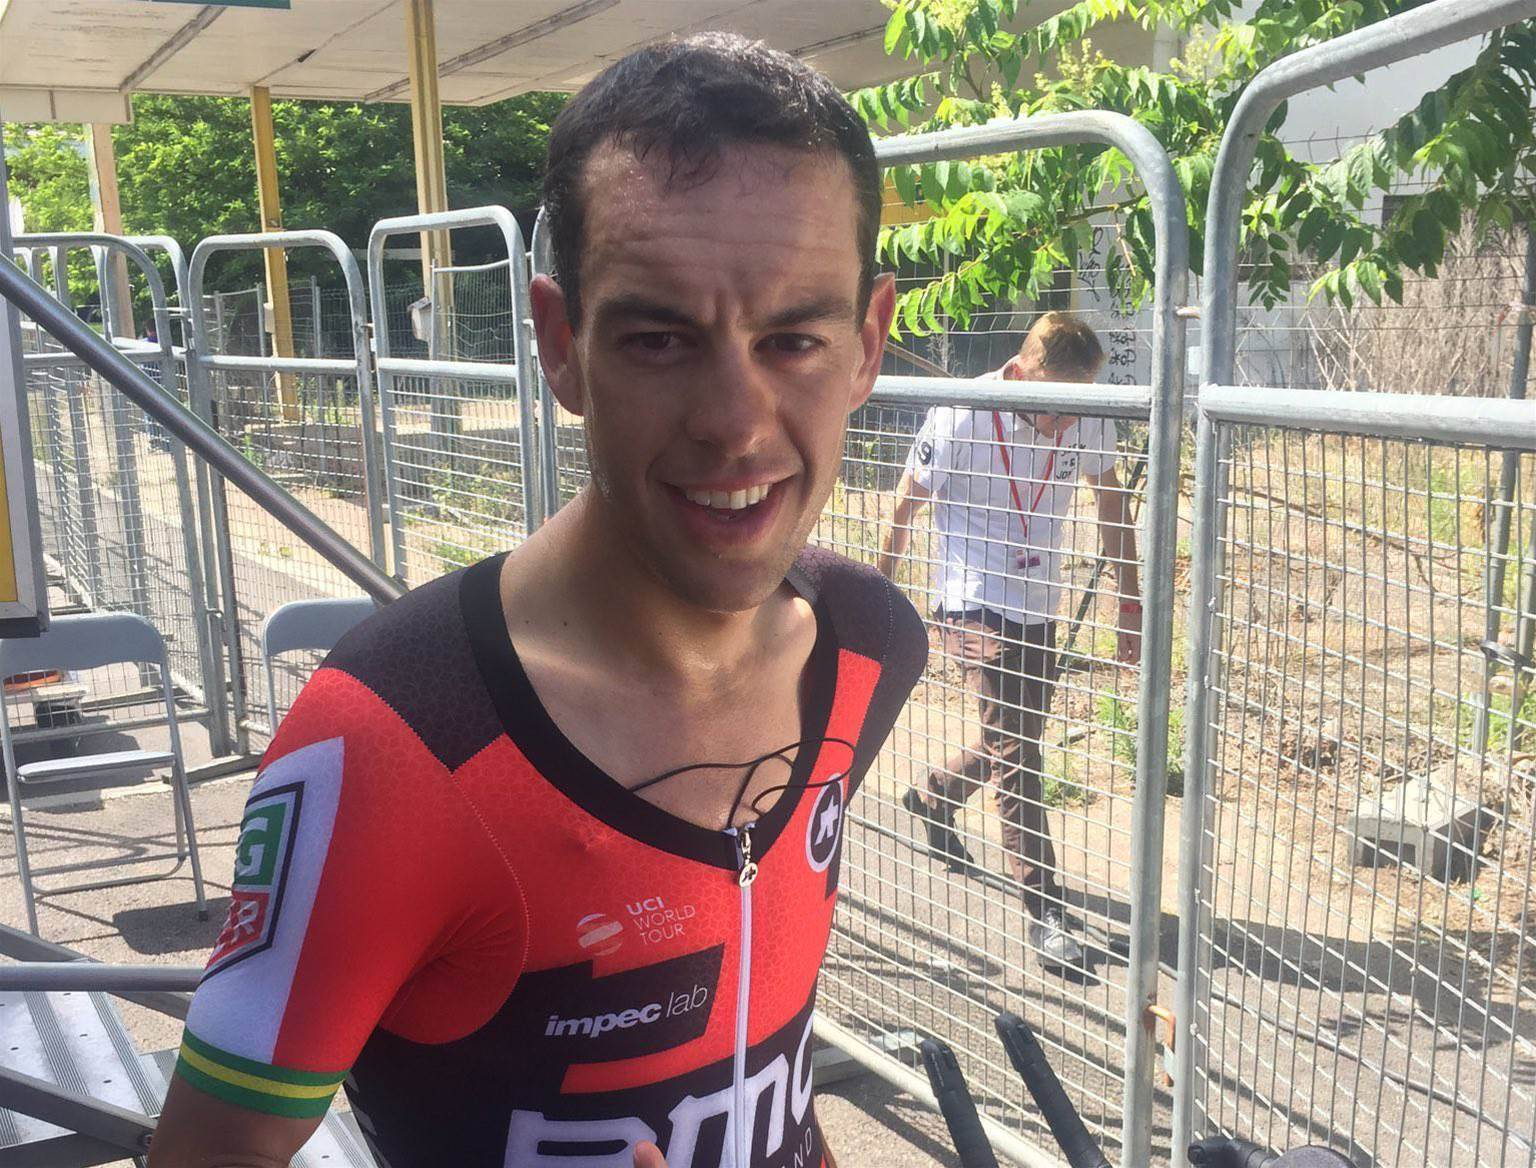 Porte beats Froome in Dauphine time trial